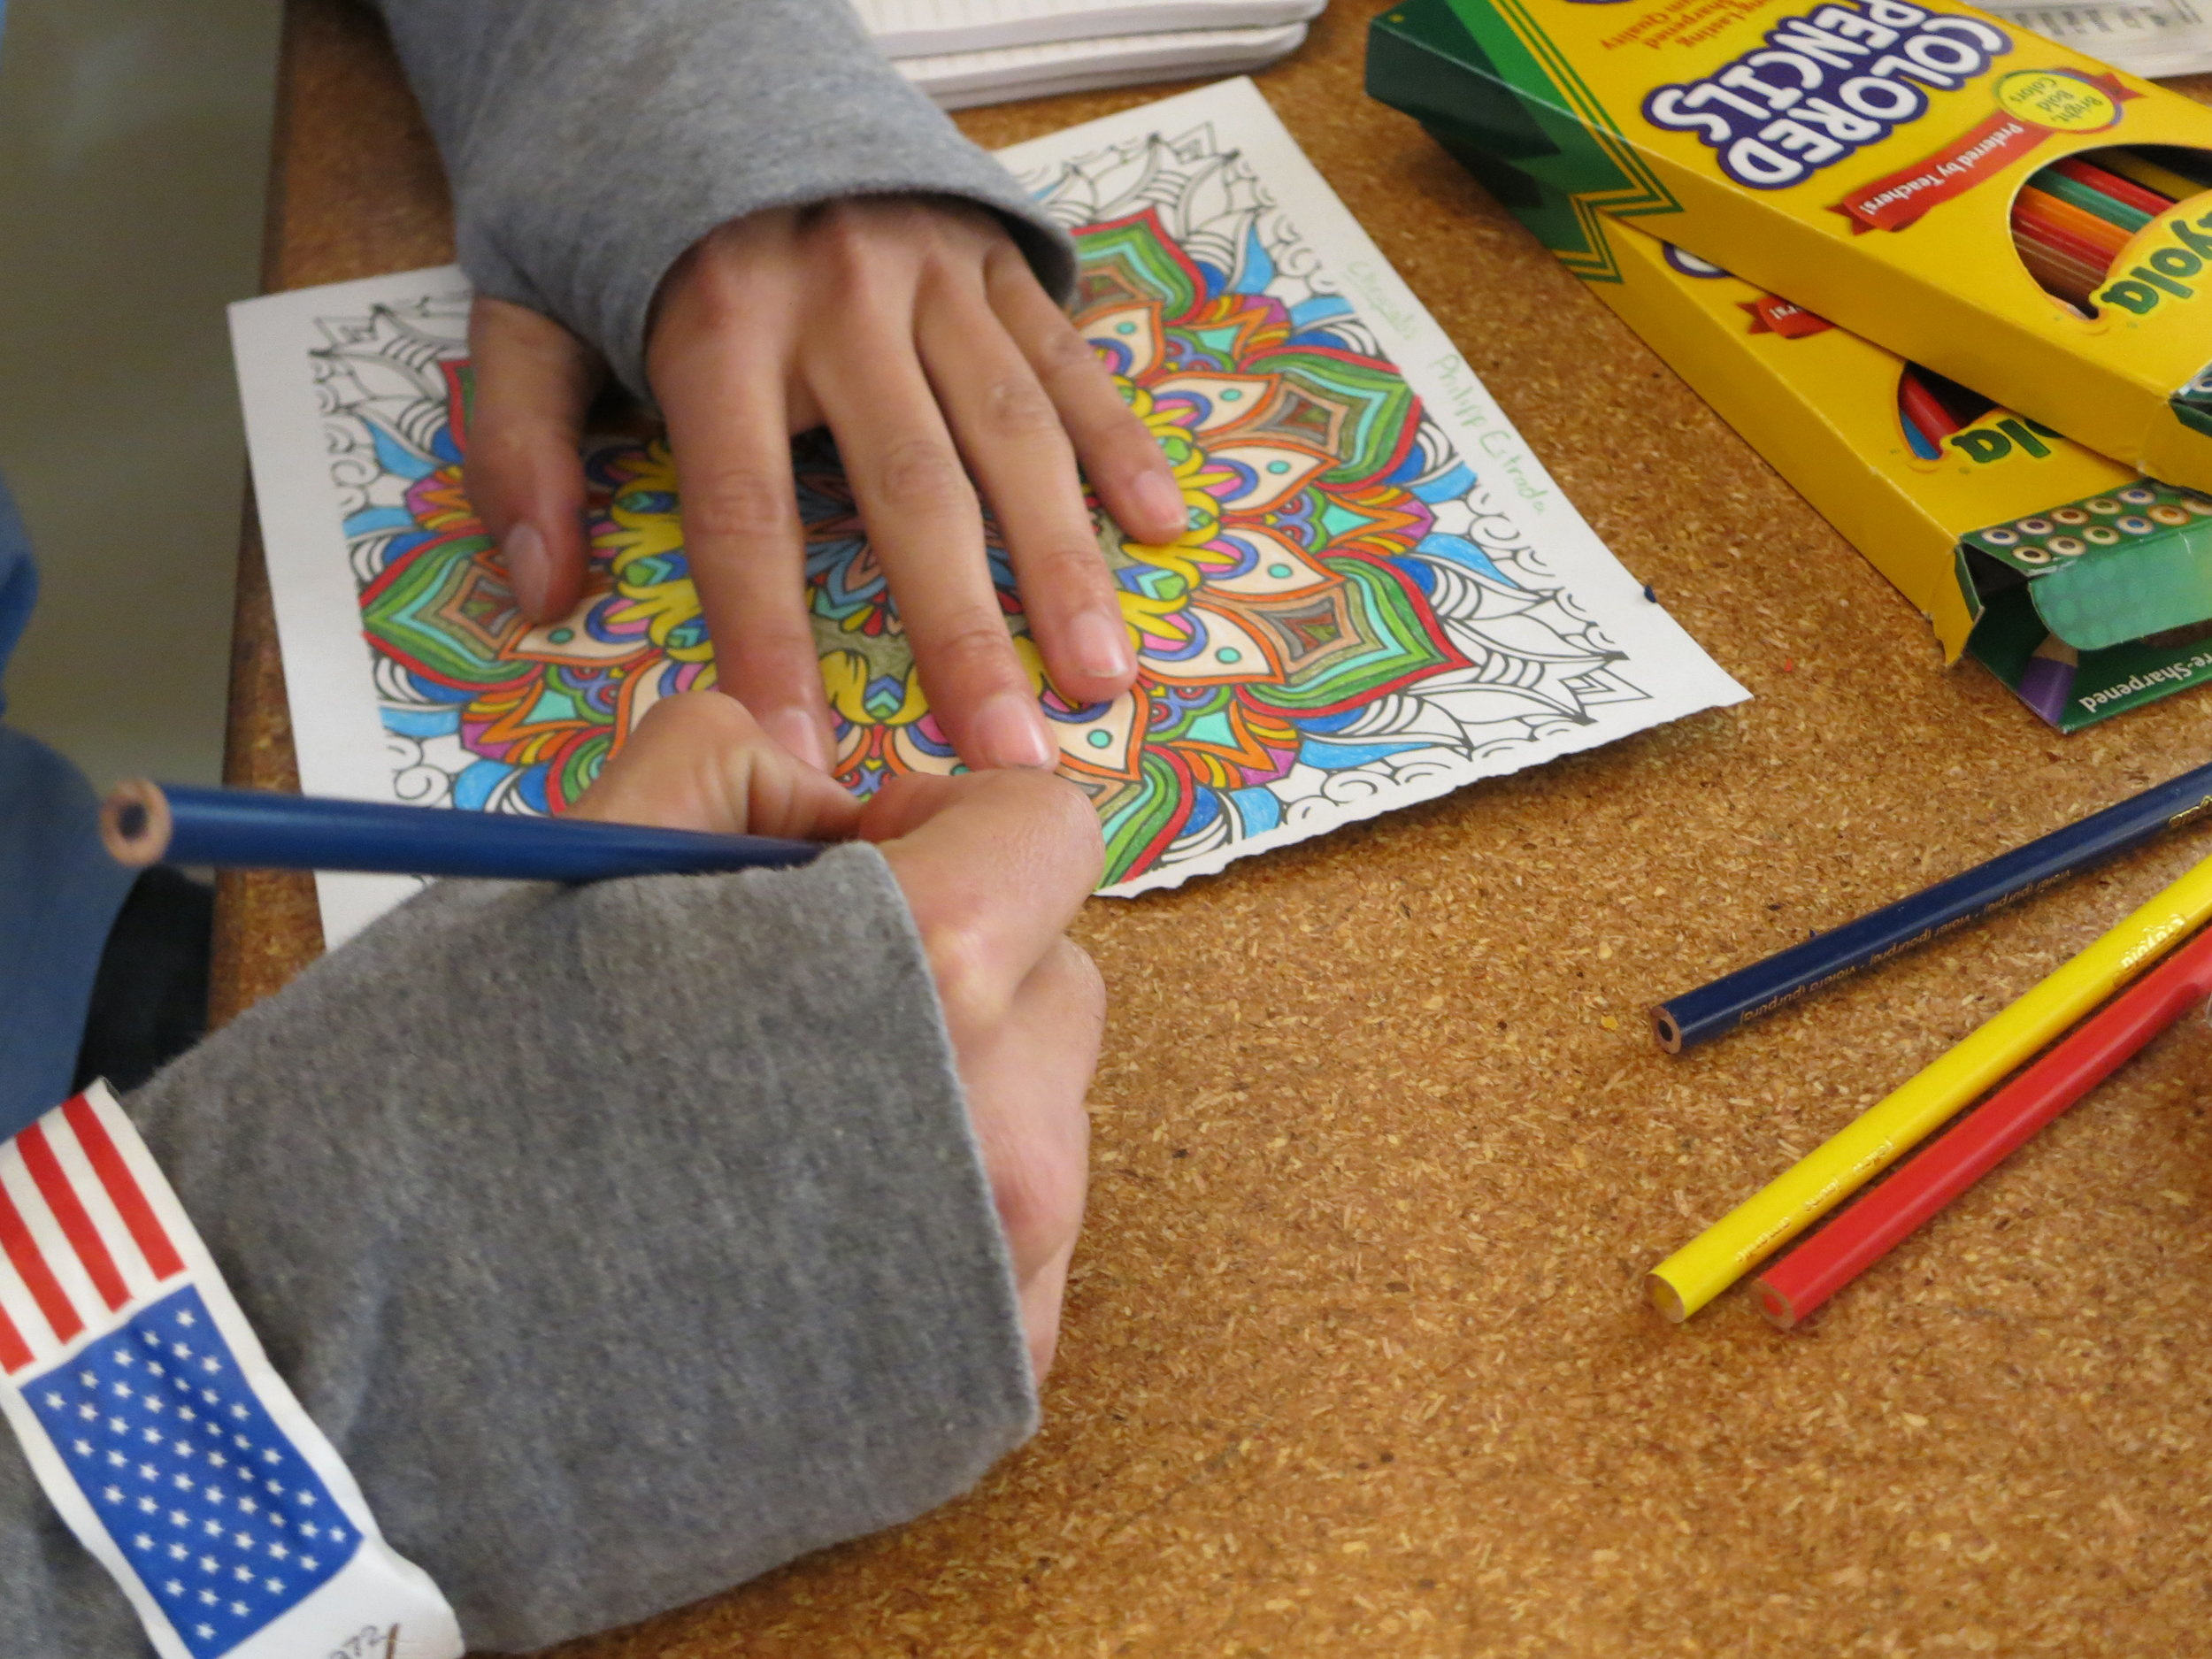 Homeless youths were encouraged to create therapeutic art as part of the day's activities. After being counted and surveyed about their current conditions, they were given access to donations, food and other services.